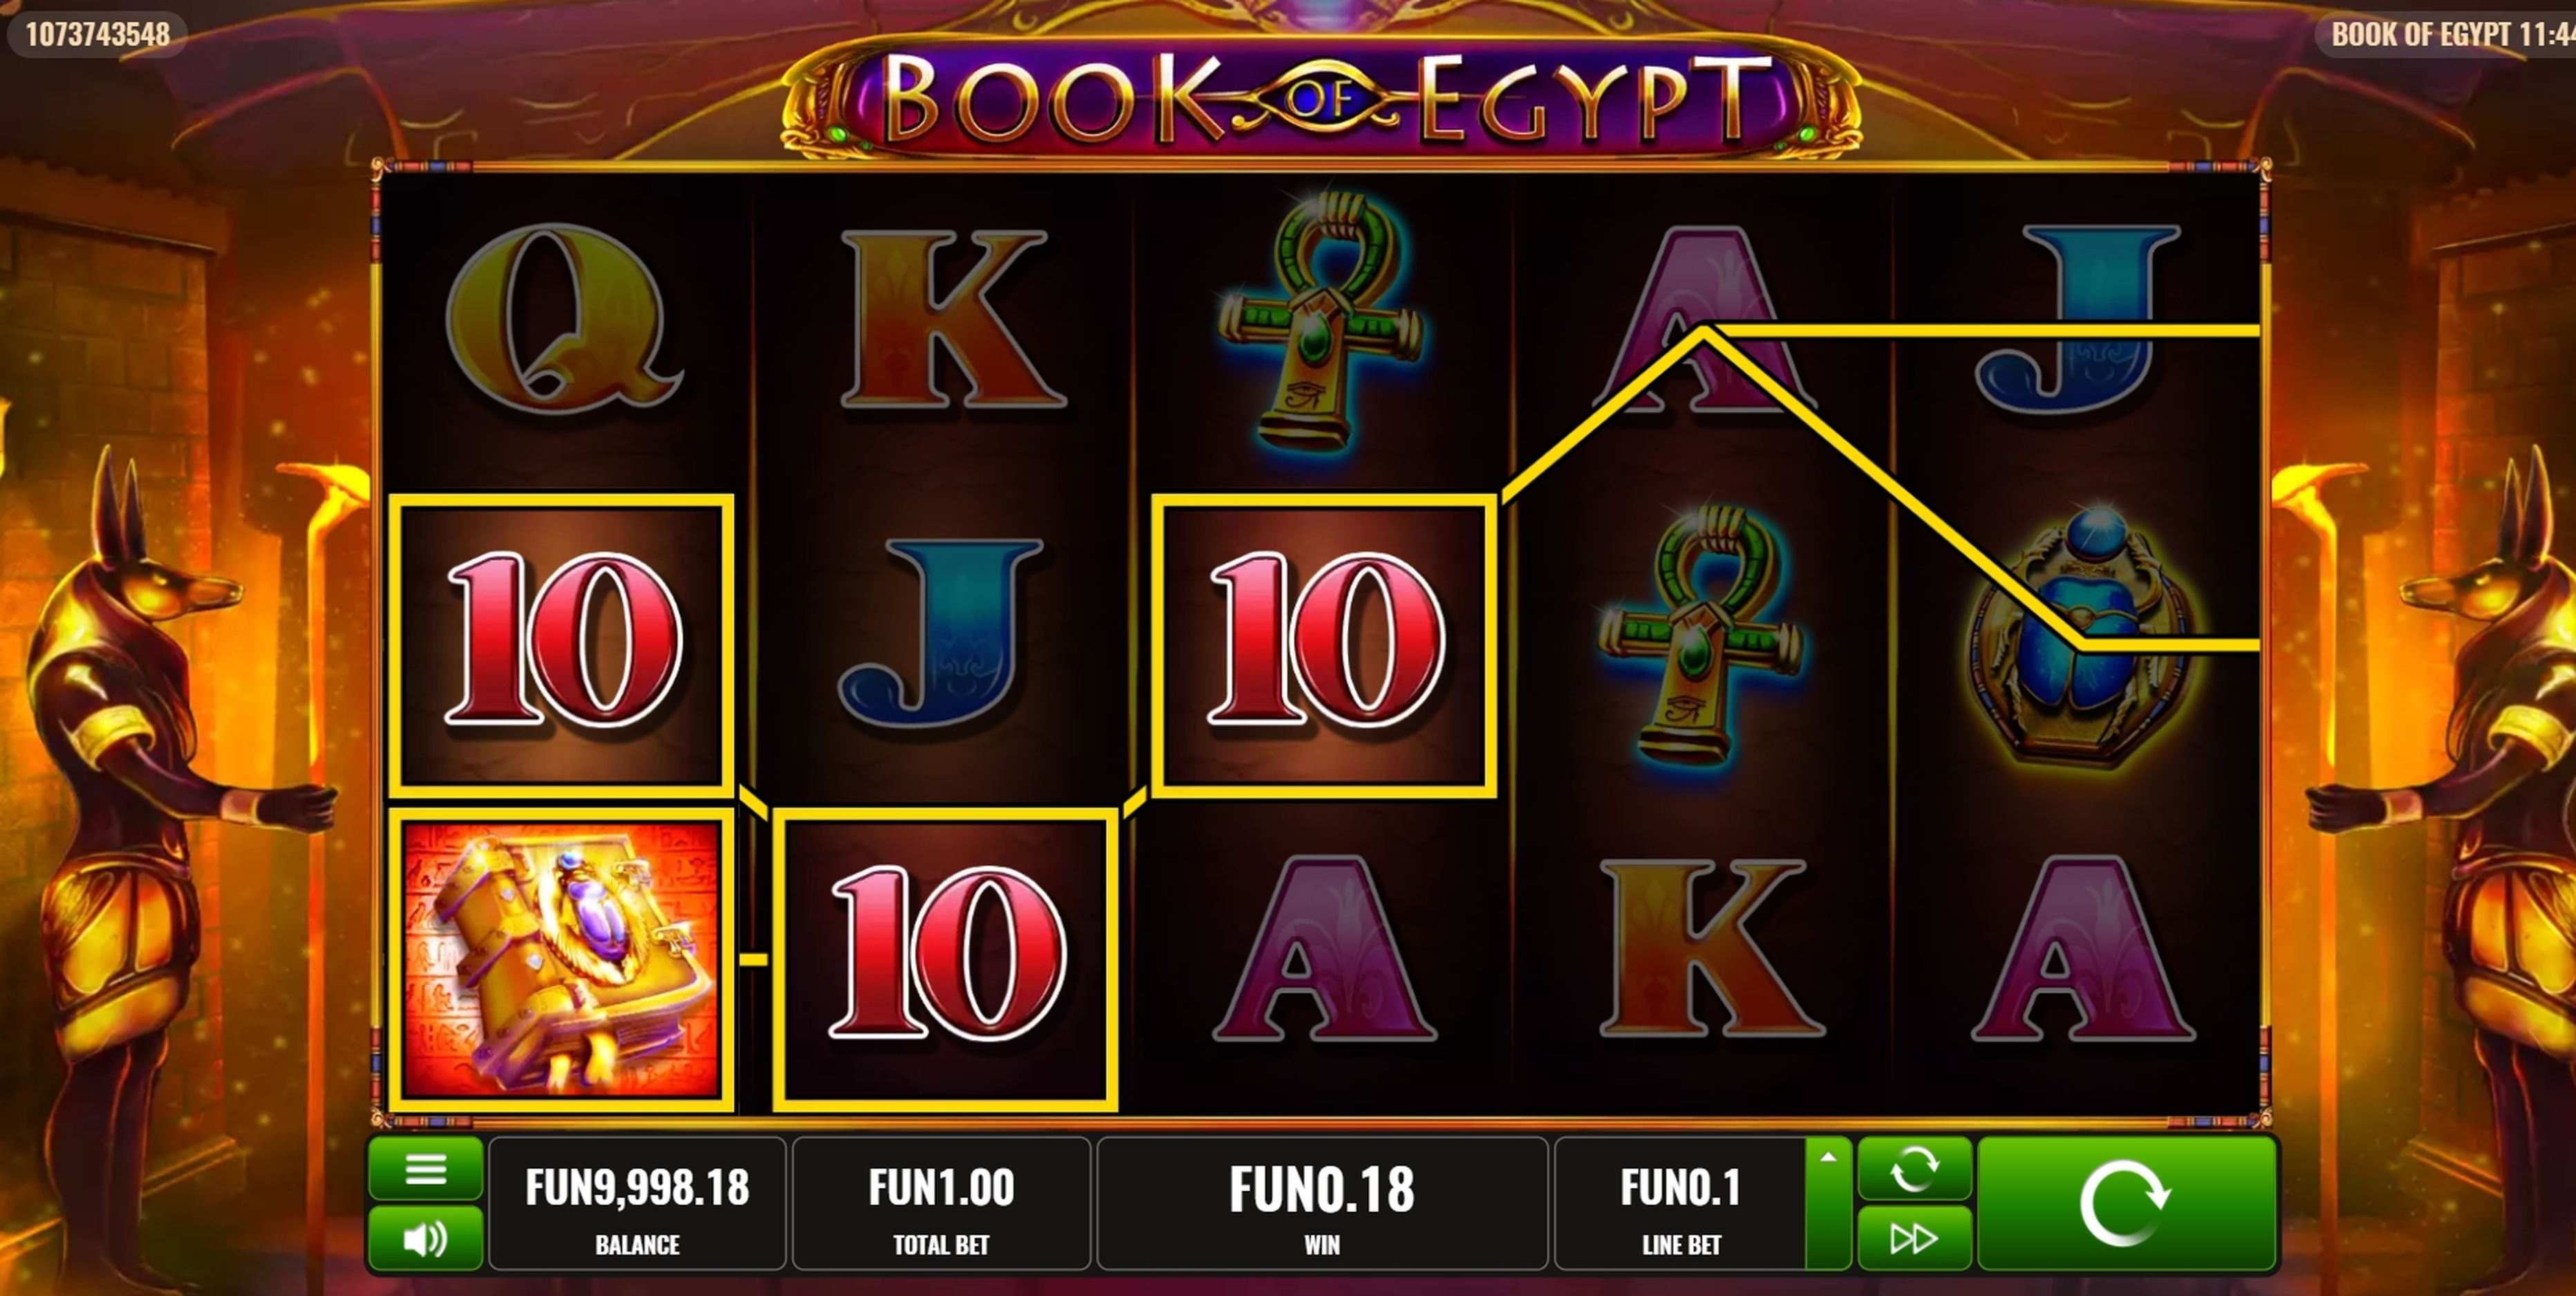 Win Money in Book of Egypt Free Slot Game by Platipus